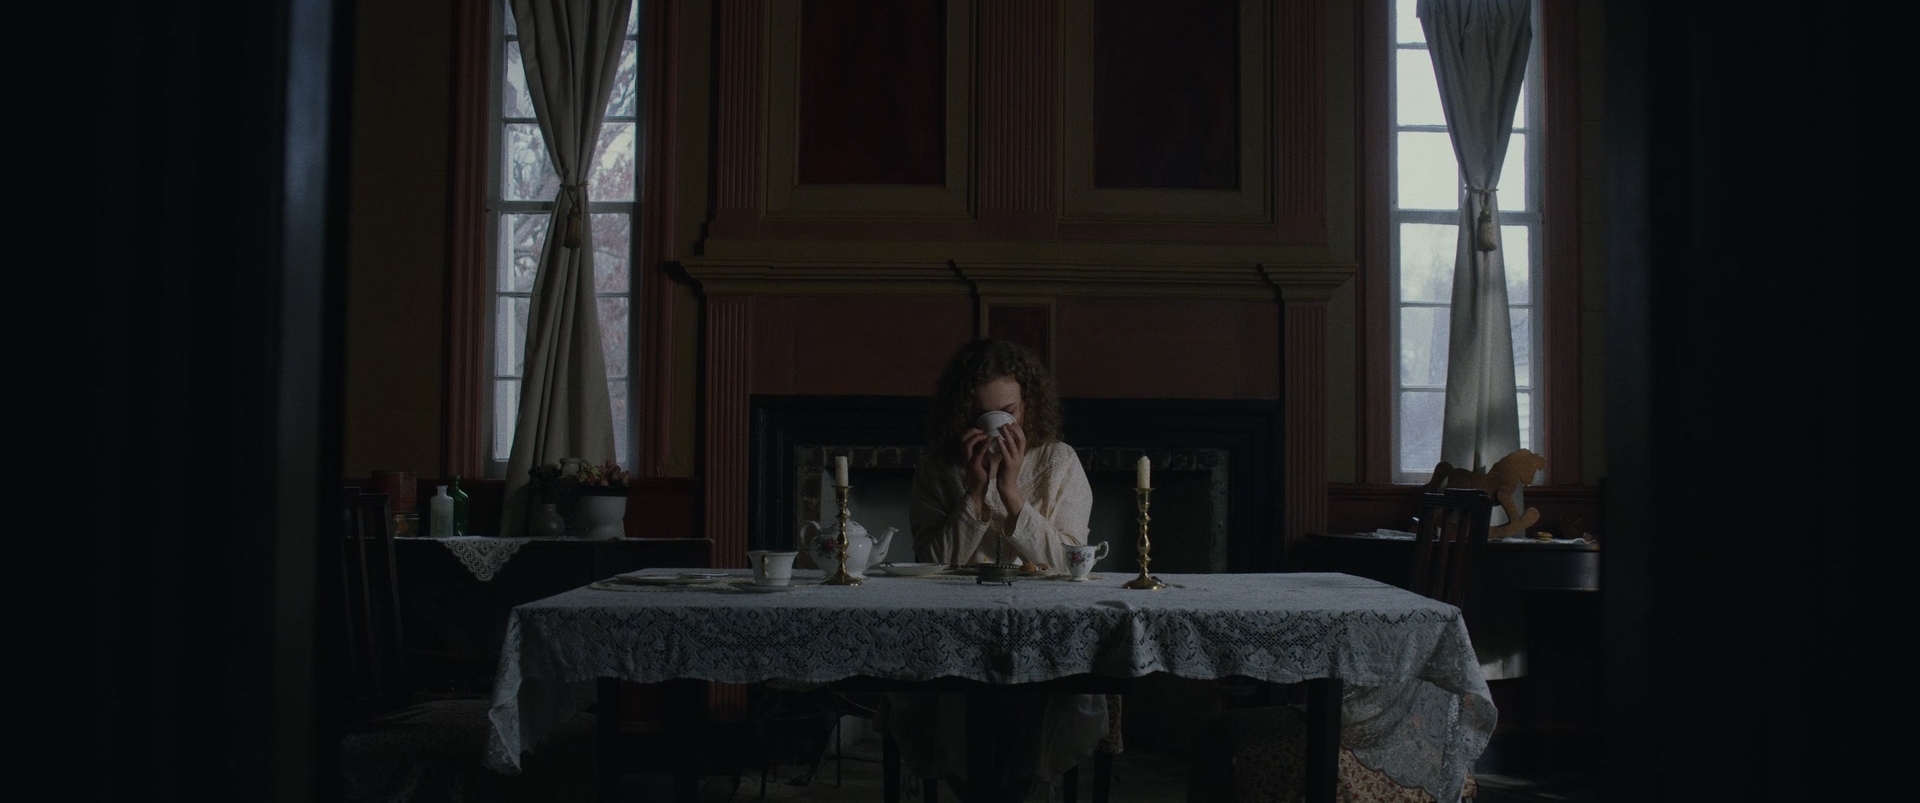 A girl sips tea at her dining table.